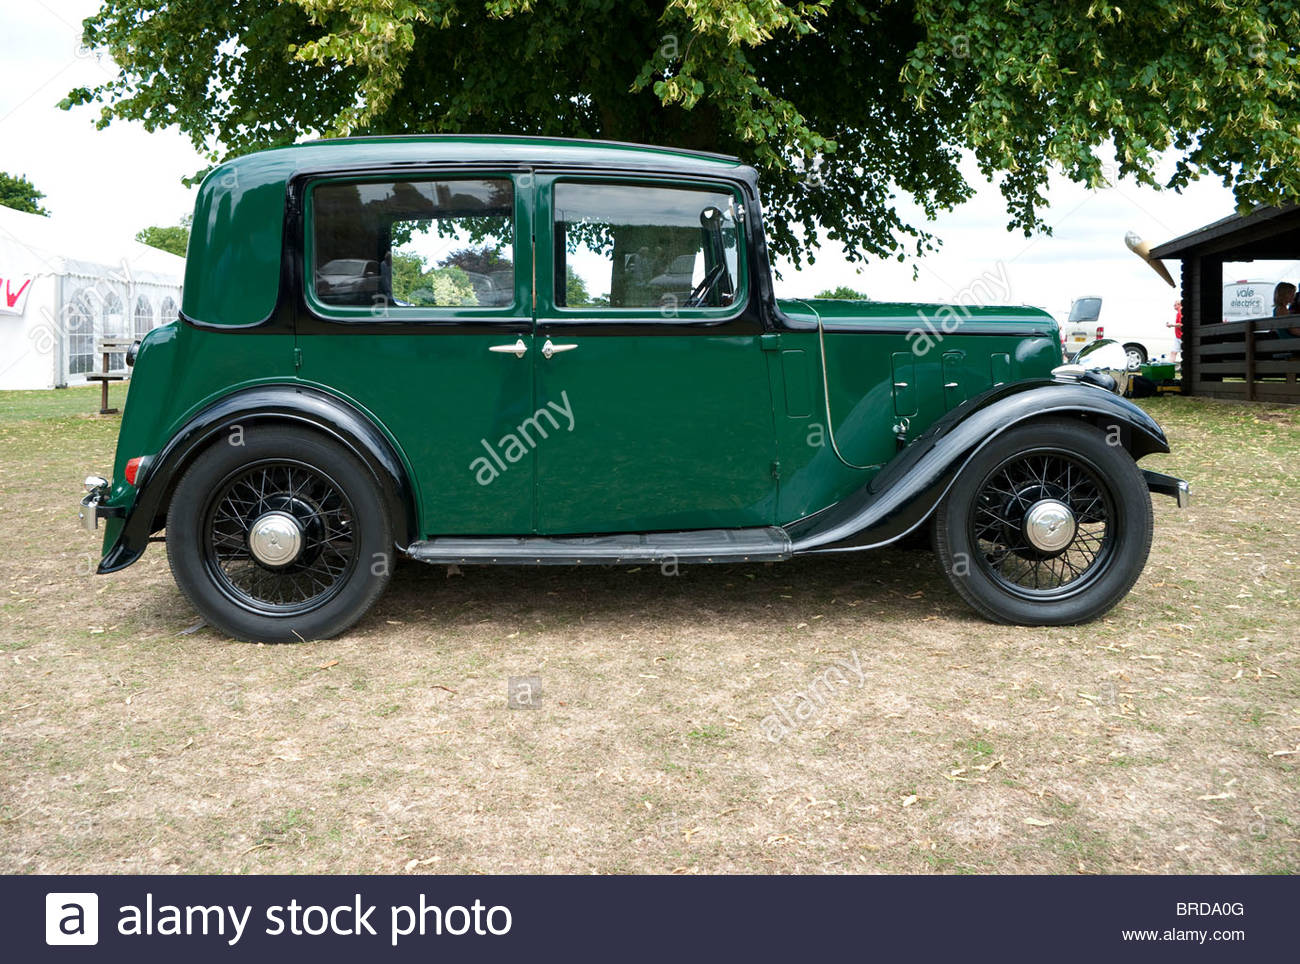 A British 1930s Austin 10 classic car shown in side view; UK - Stock Image